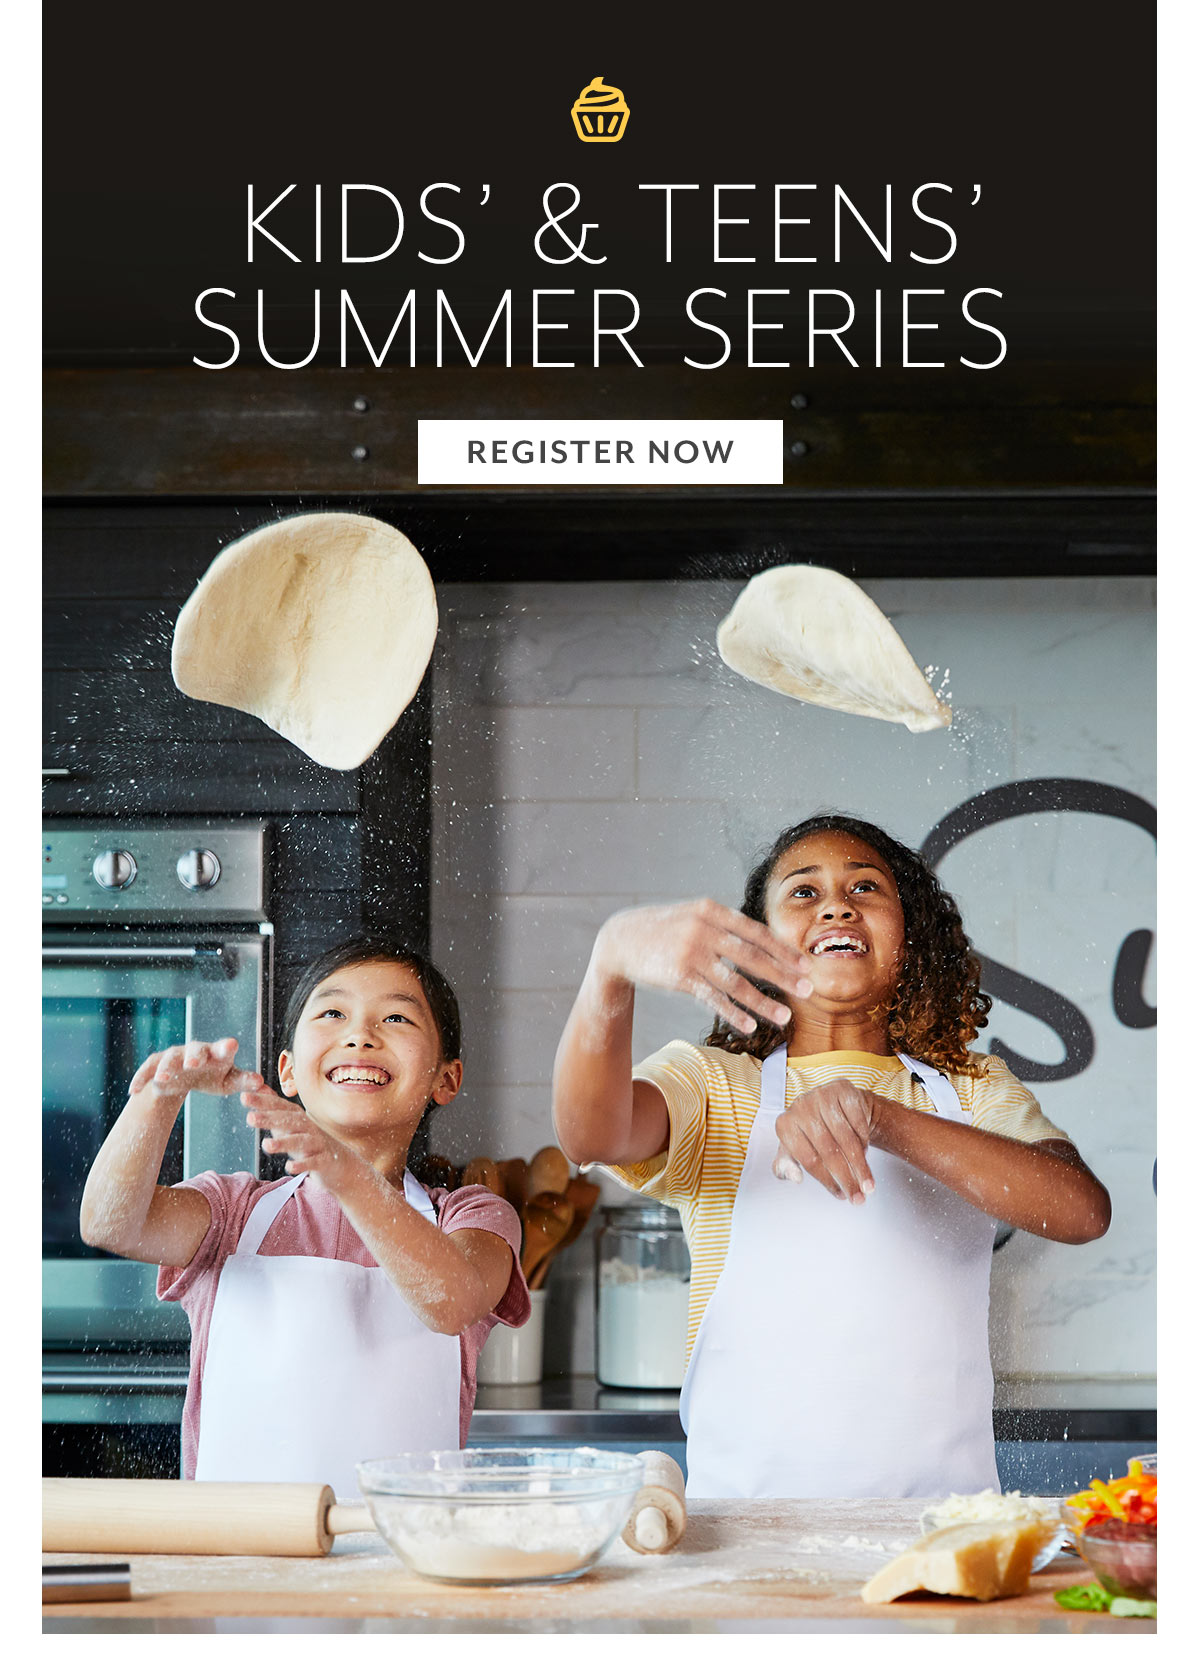 Kids' & Teens' Summer Series